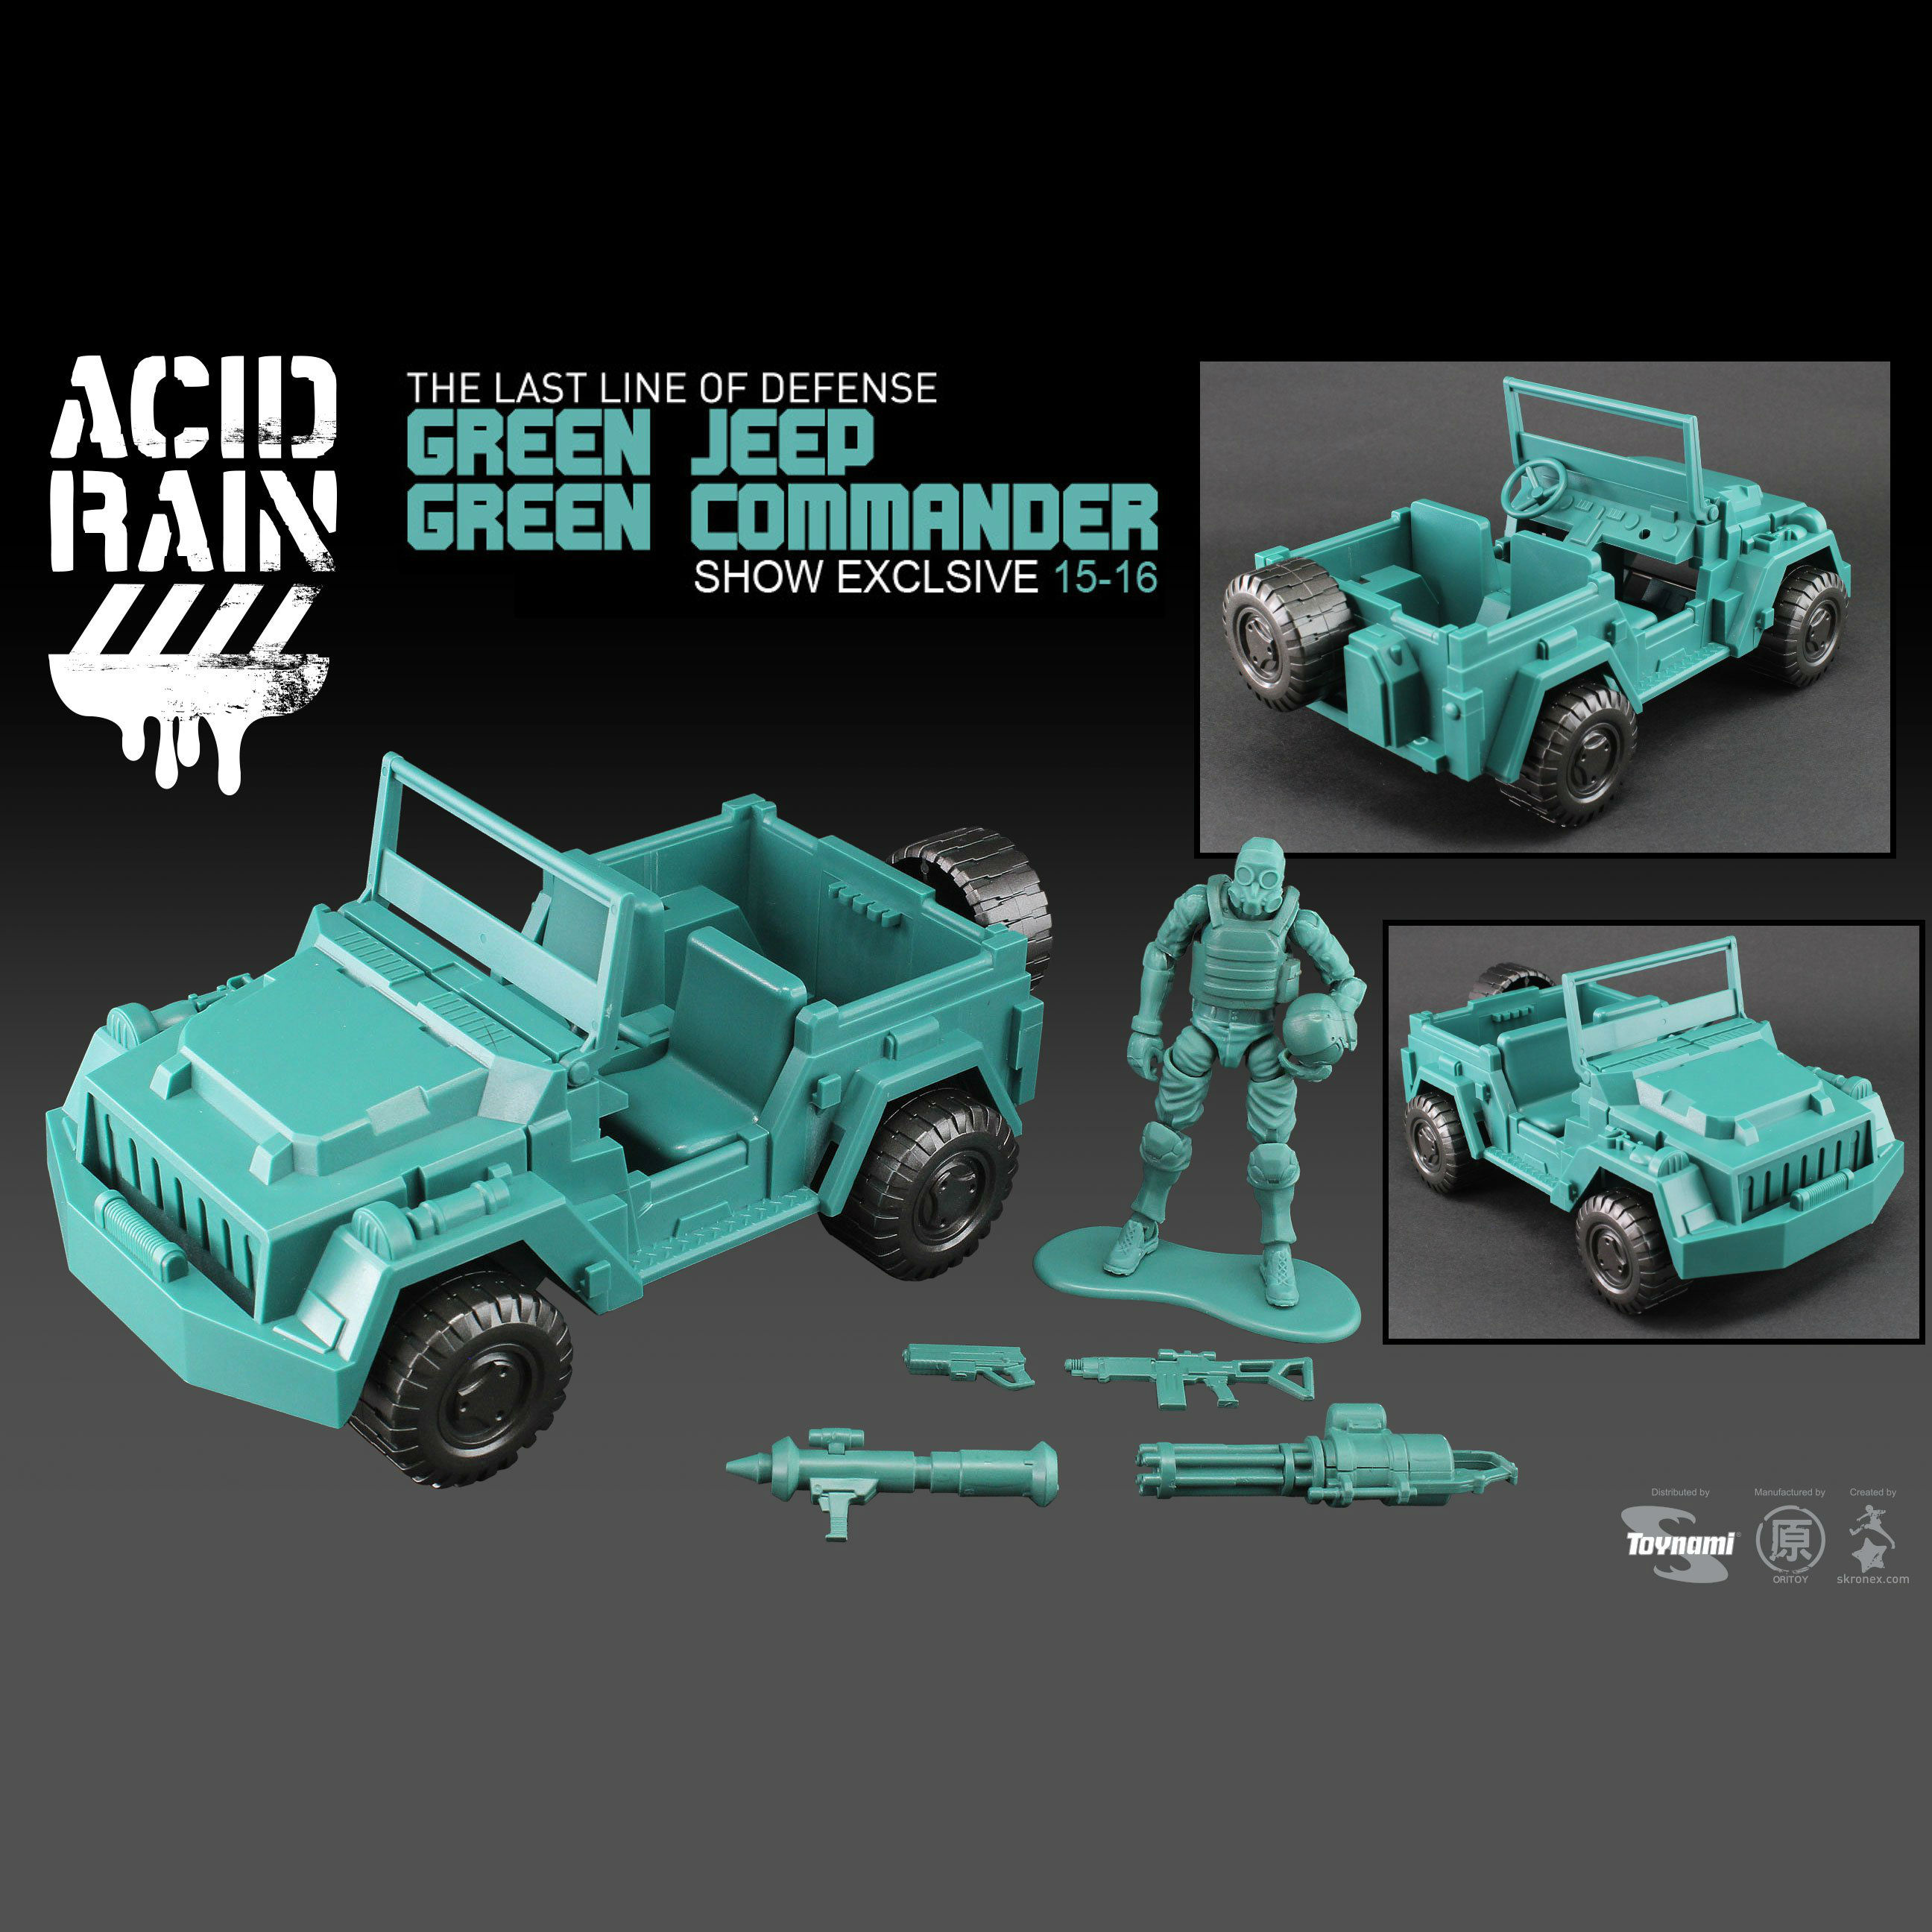 1:18 Action figure archive Acid Rain World checklist